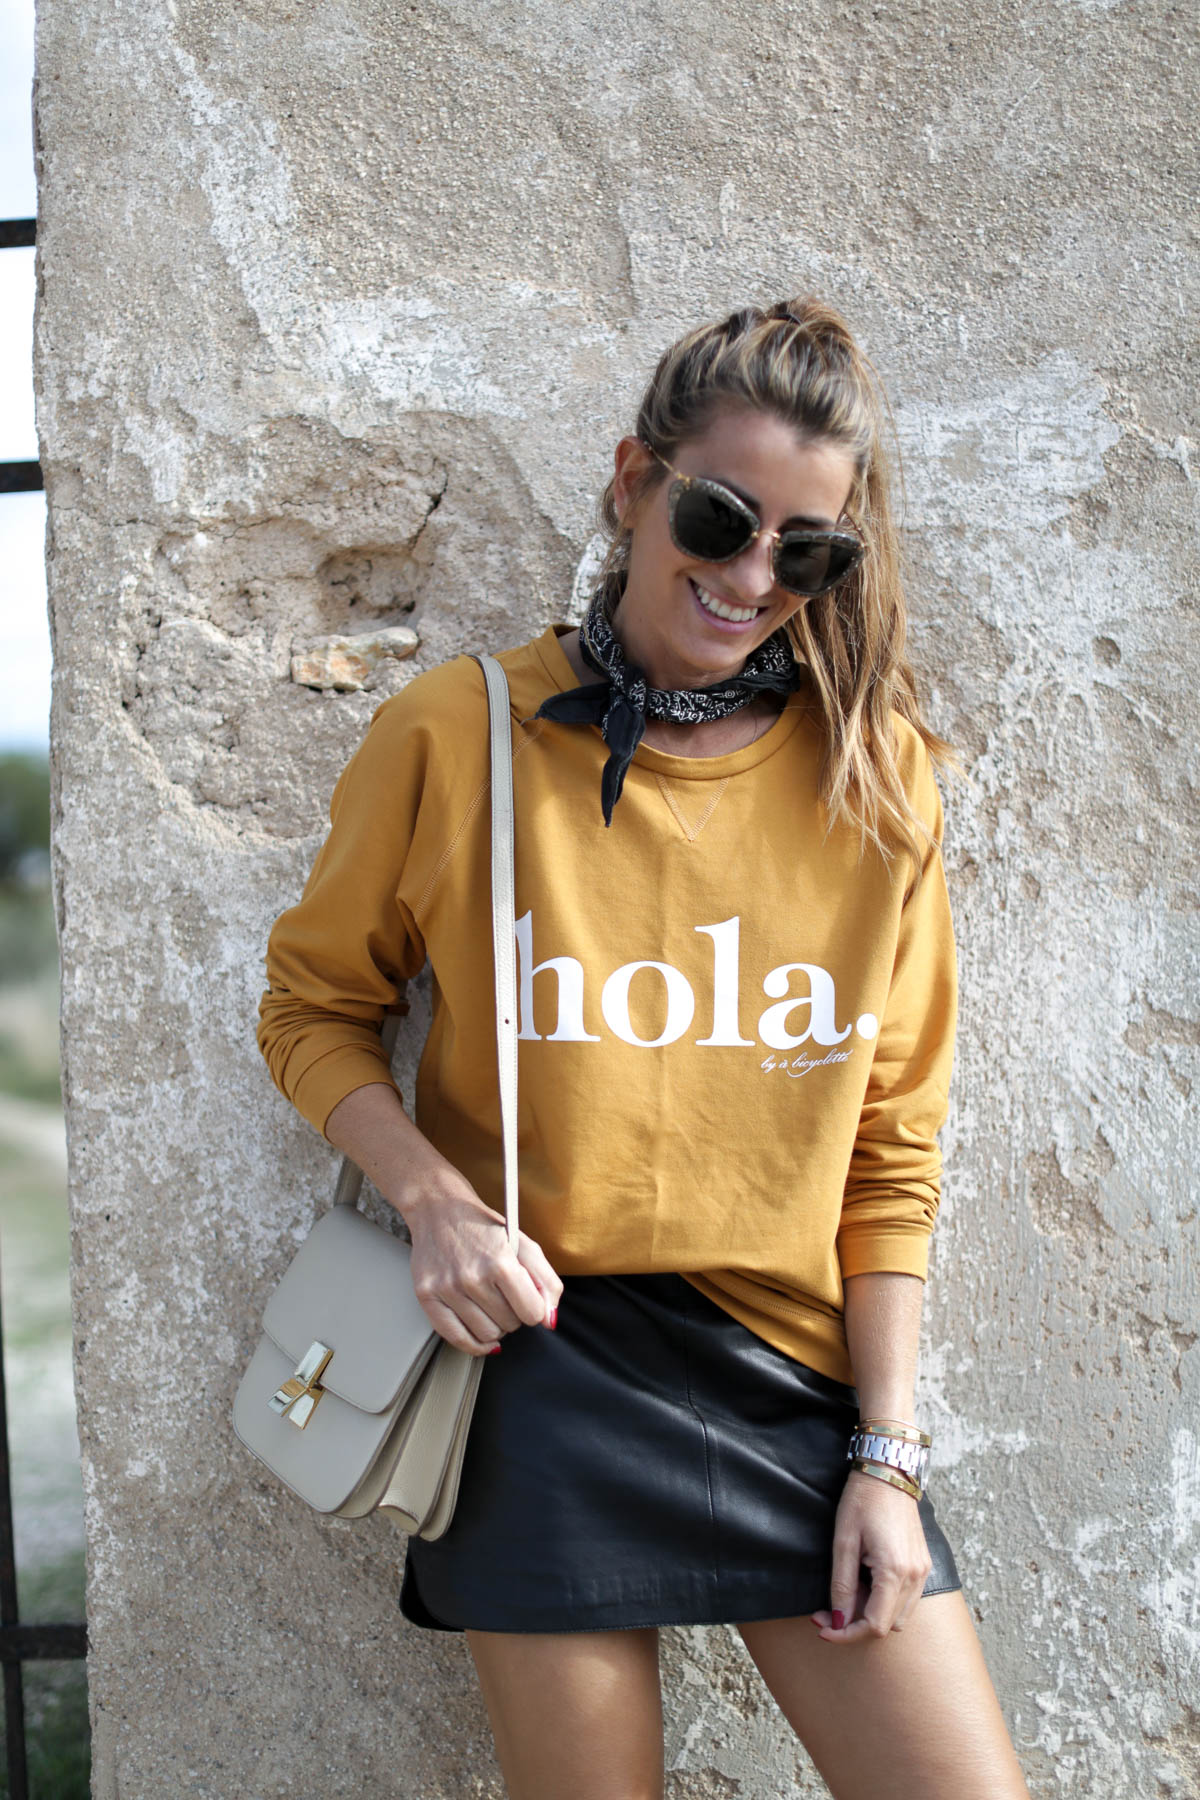 black-friday-a-bicyclette-sweatshirt-hoodie-all-star-leather-piel-cuero-celine-bag-bolso-mini-skirt-falda-streetstyle-look-bartabac-outfit-moda-blogger-7